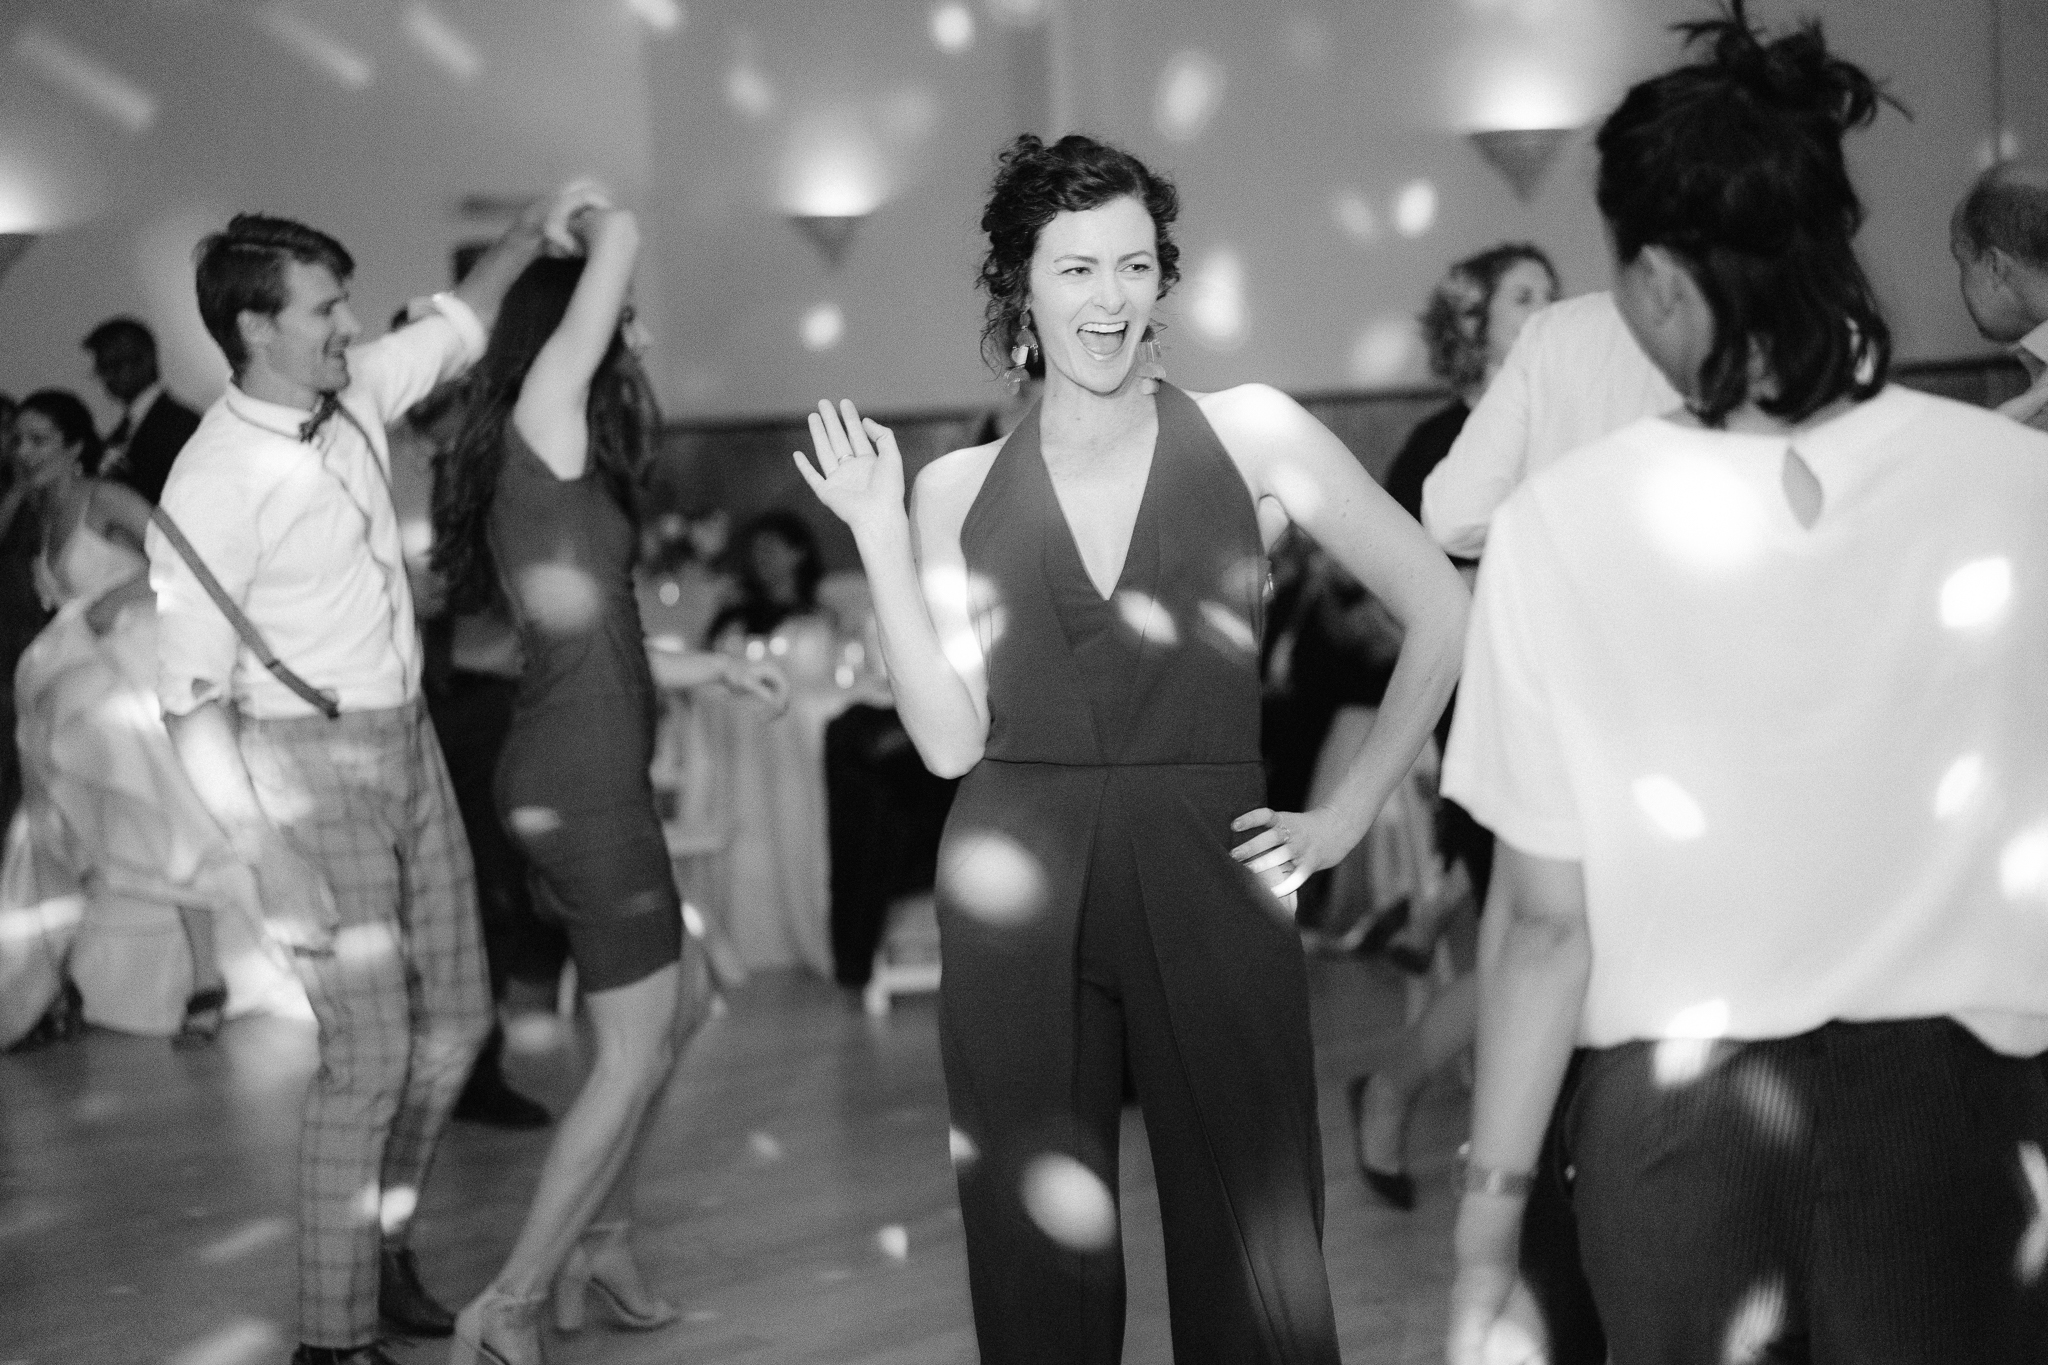 wedding guests having a great time dancing at the verdi club in san francisco